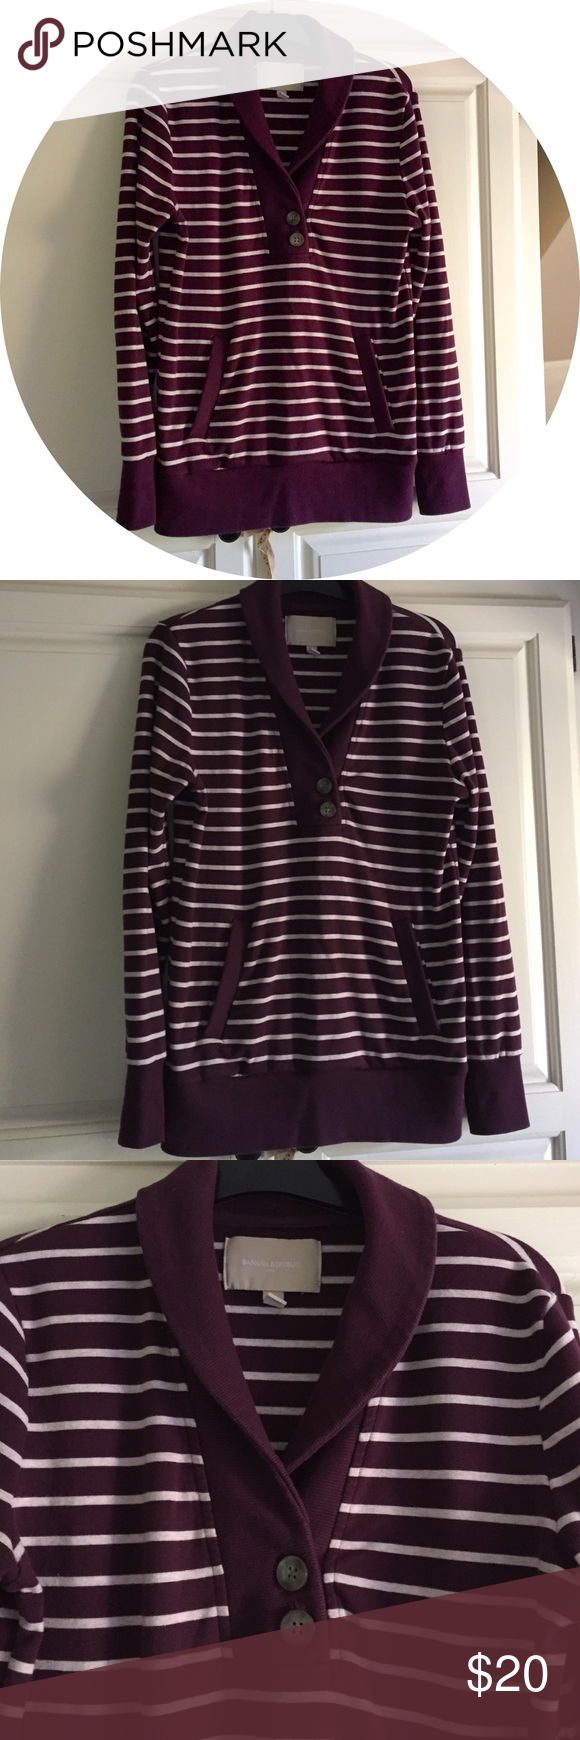 BANANA REPUBLIC Striped Pullover Sweater | Shape, Signs and Stripes